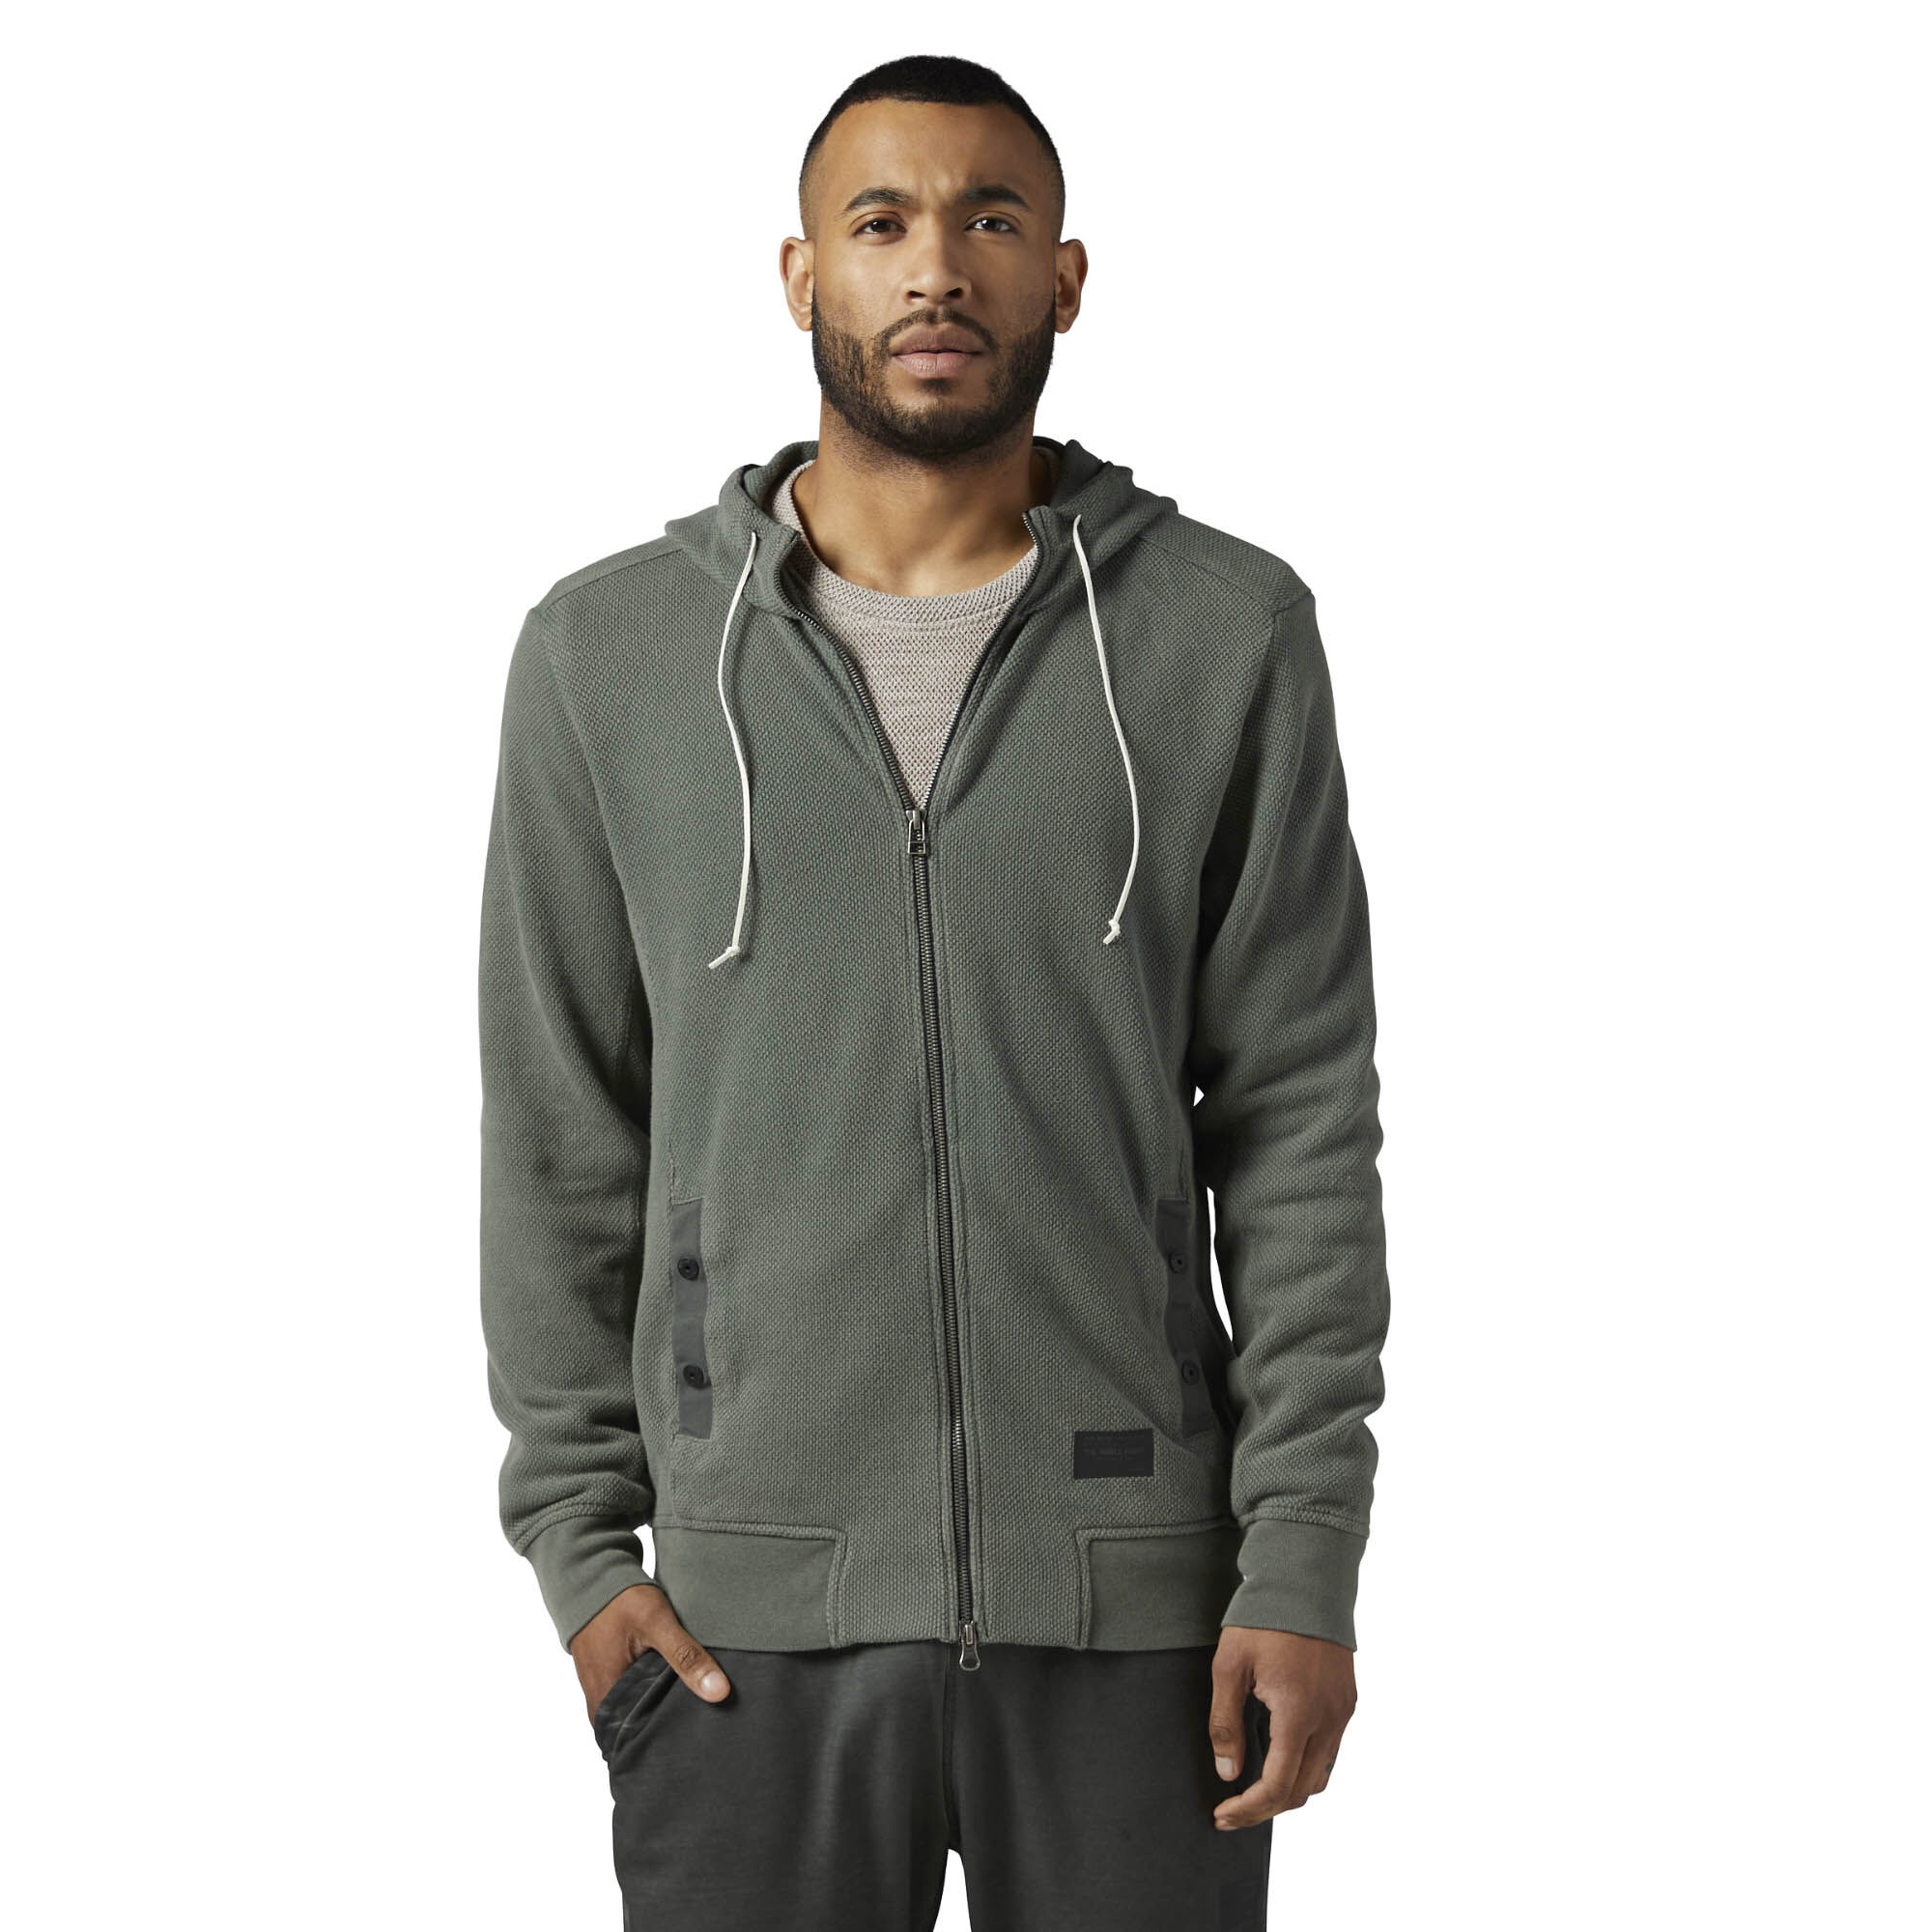 Reebok - The Noble Fight Washed Hoodie Iron Stone BQ5692